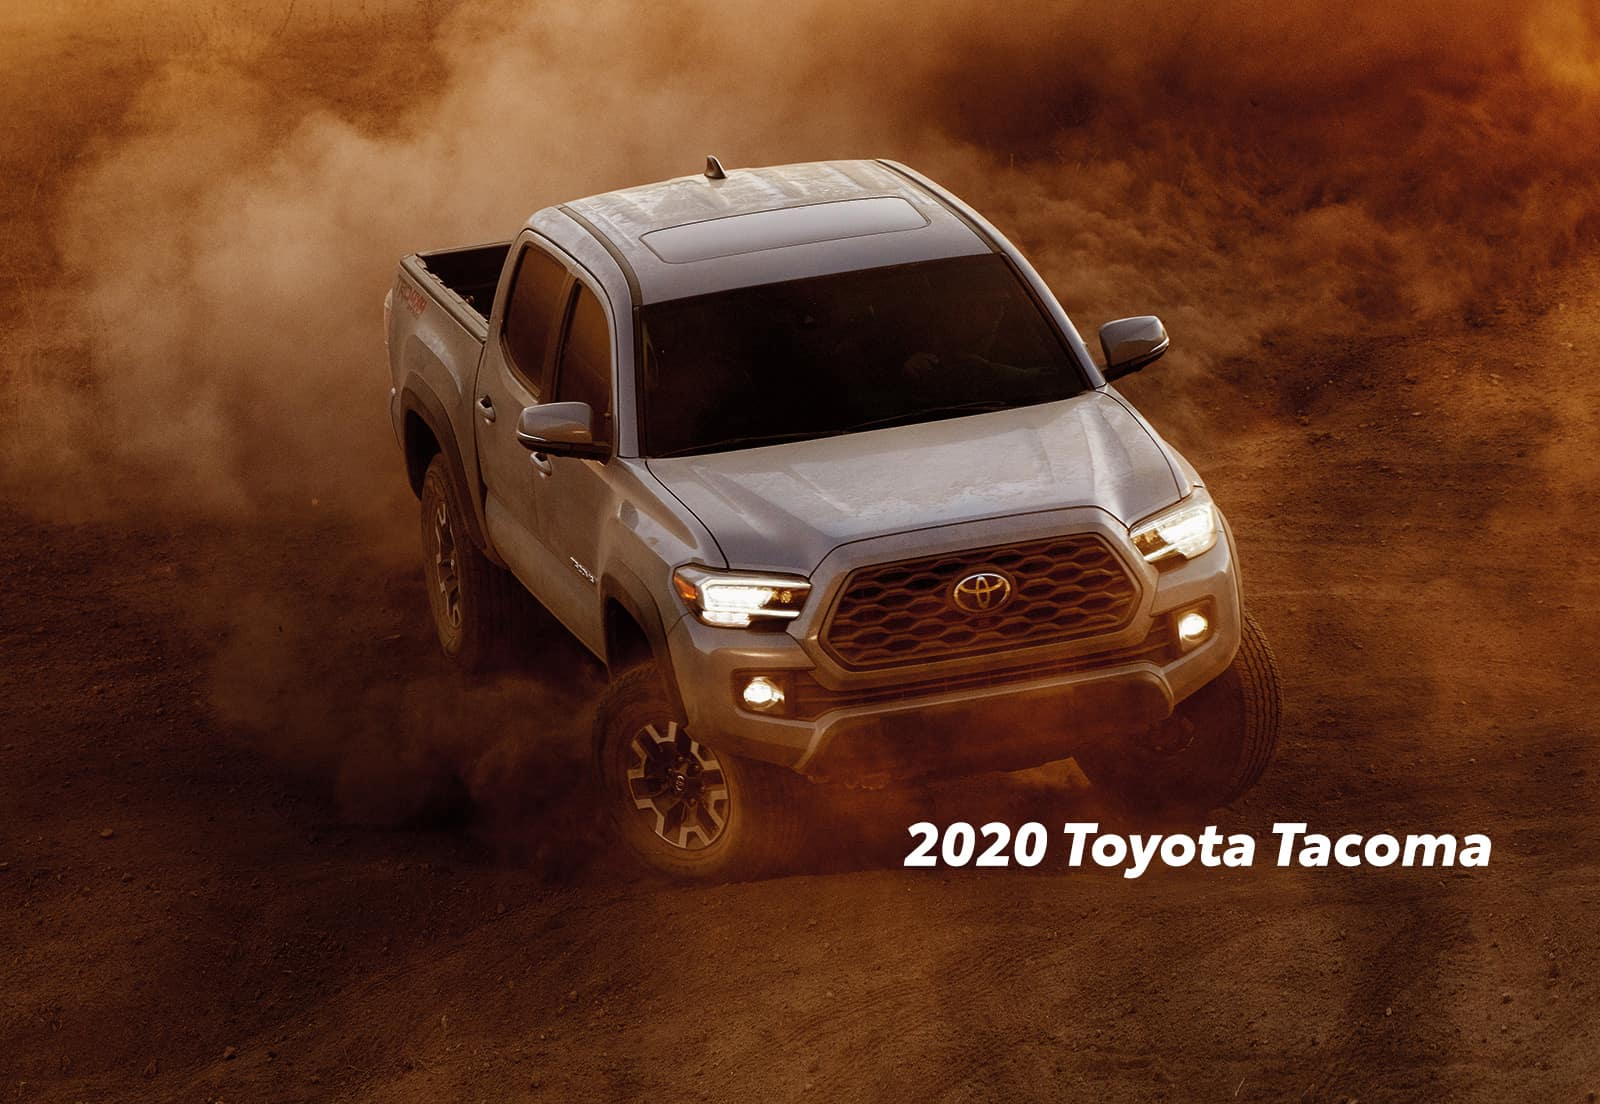 Comparison of the Toyota Tacoma vs. Tundra trucks at Lancaster Toyota of East Petersburg | 2020 Toyota Tacoma running on a dusty road